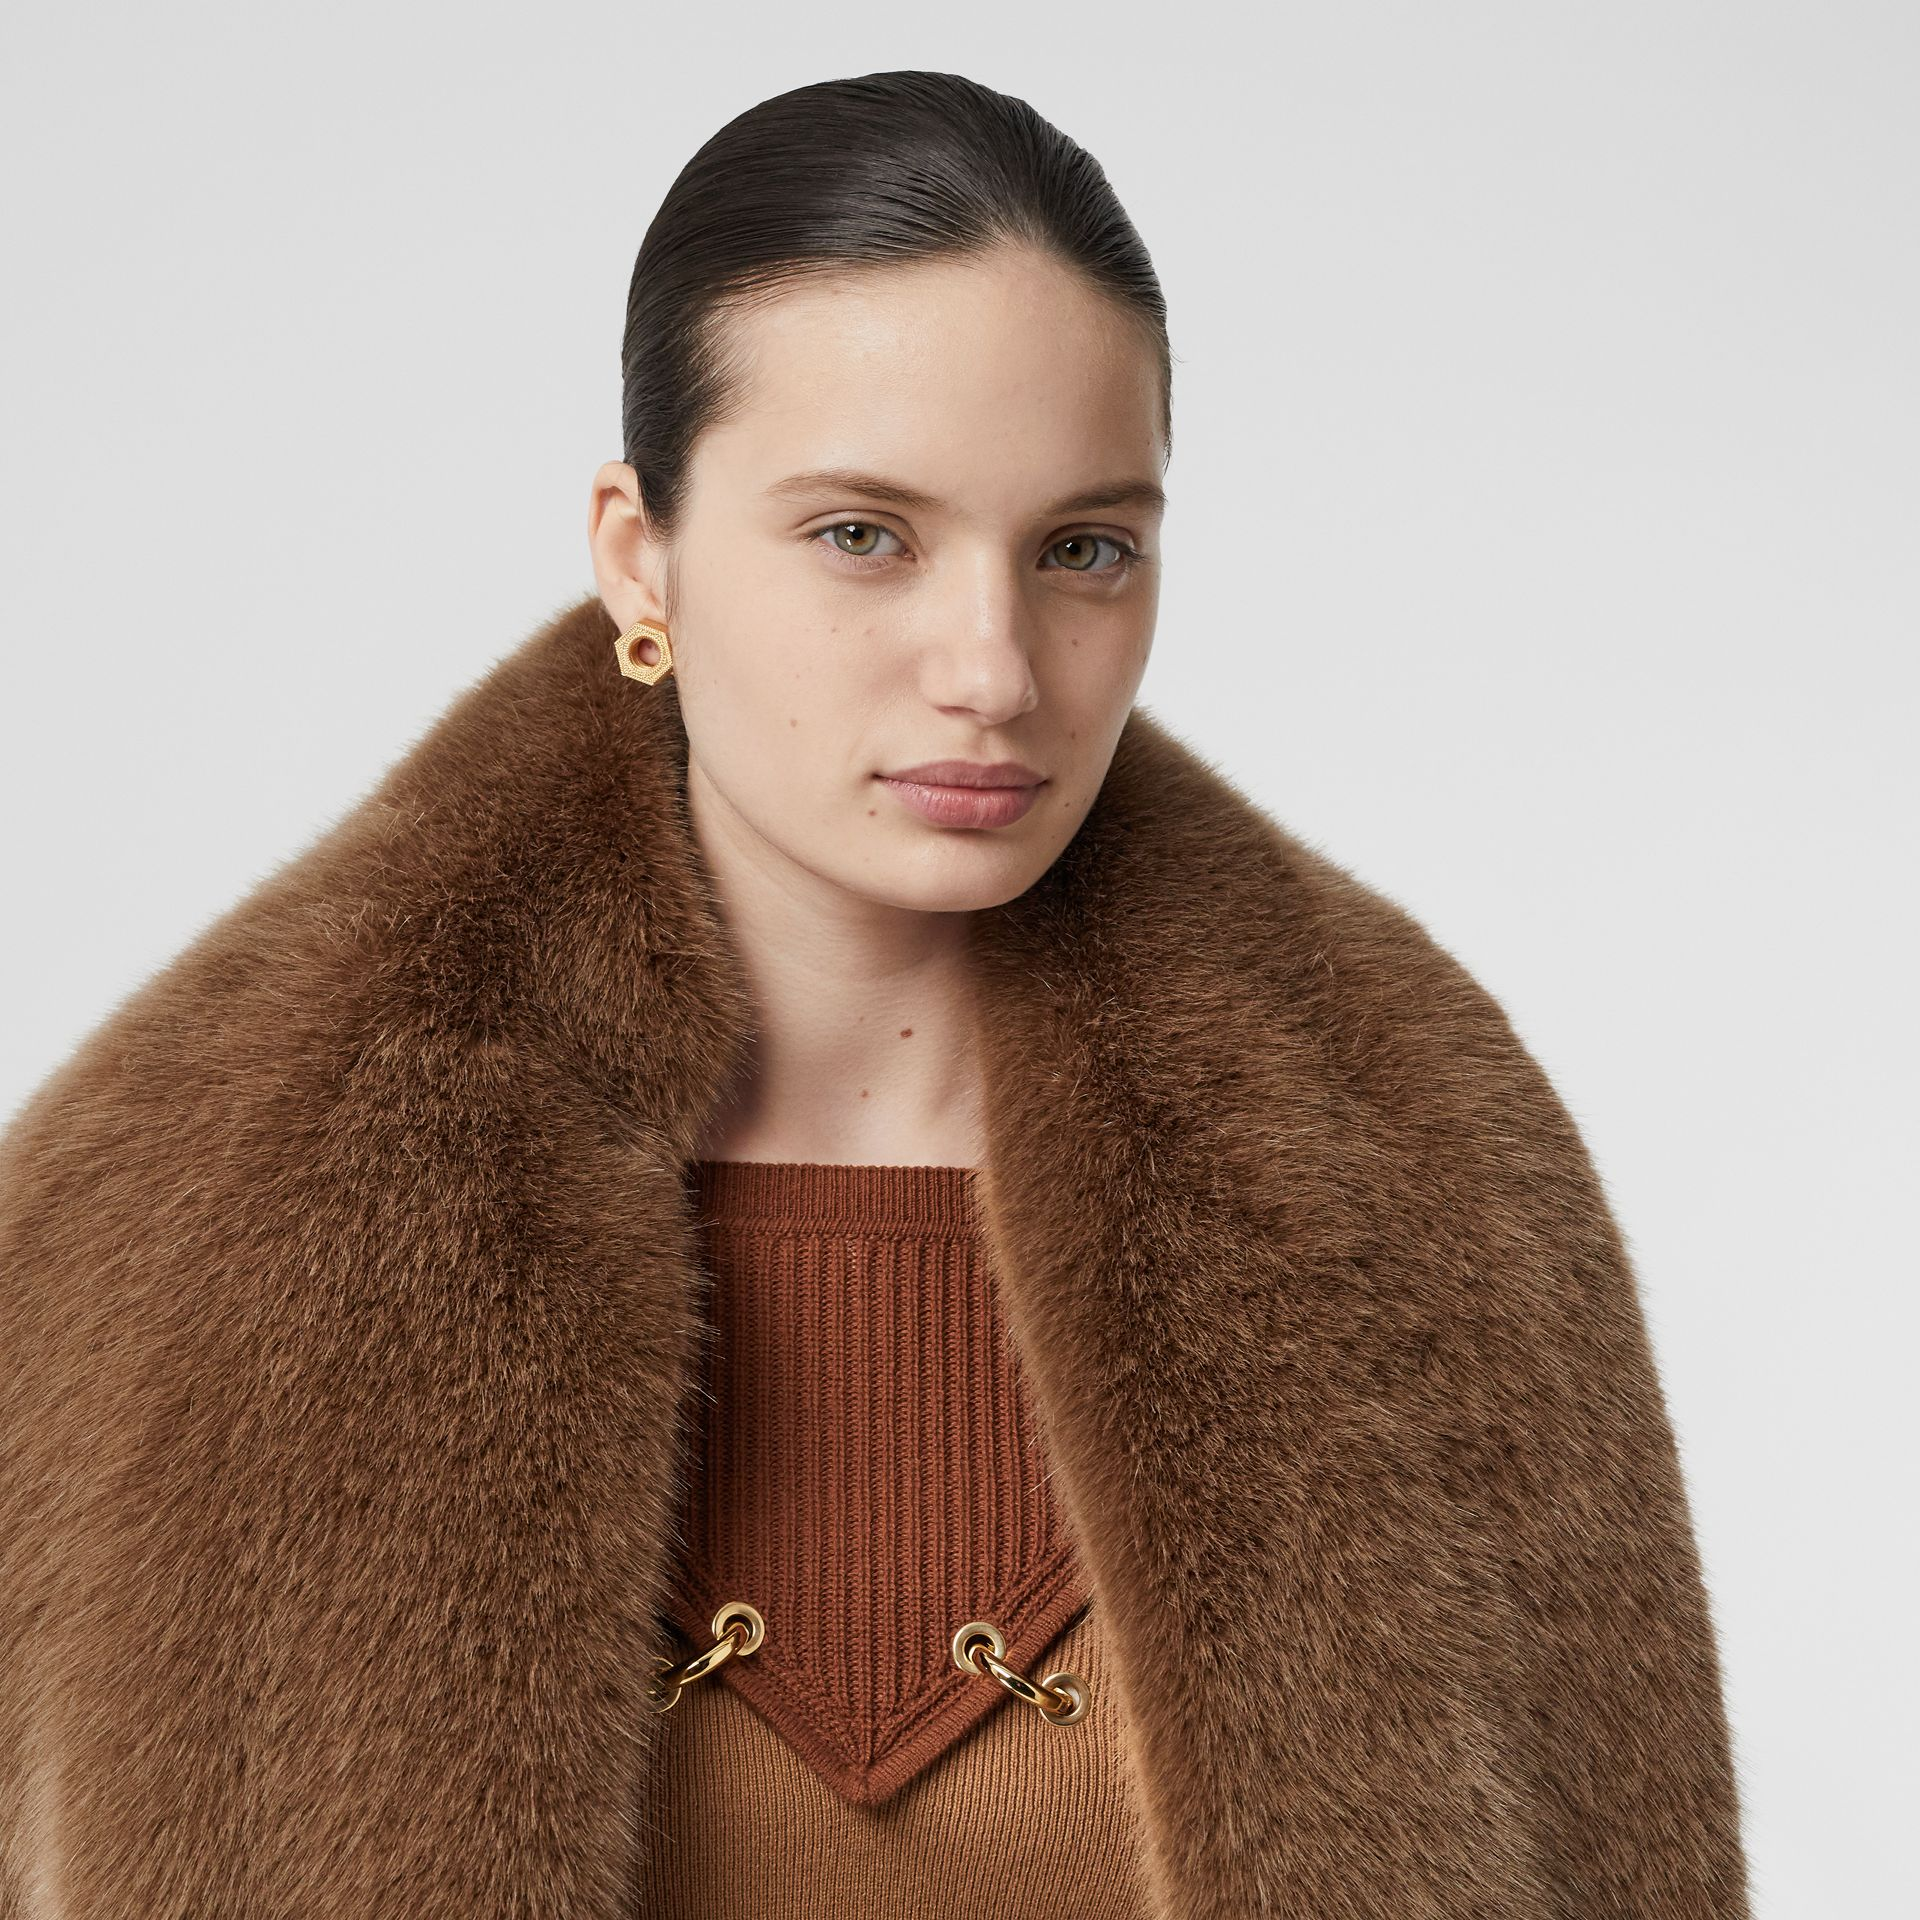 Faux Fur and Cashmere Stole in Camel - Women | Burberry - gallery image 6